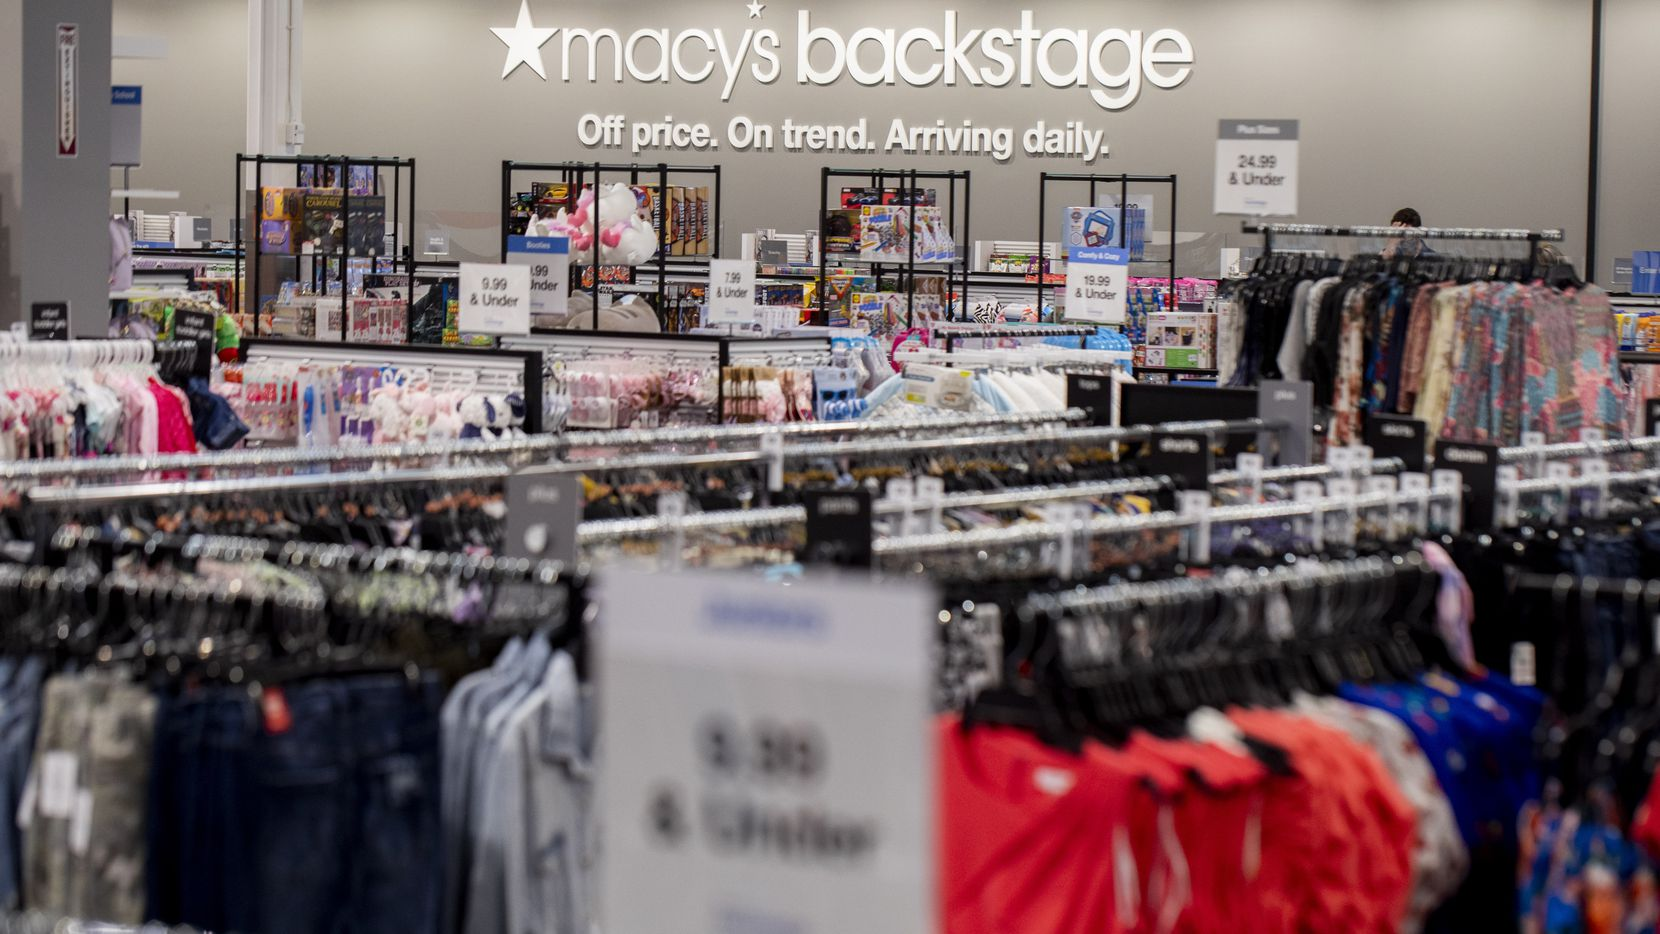 Macy's Backstage store in The Village at Allen opened in May 2021.